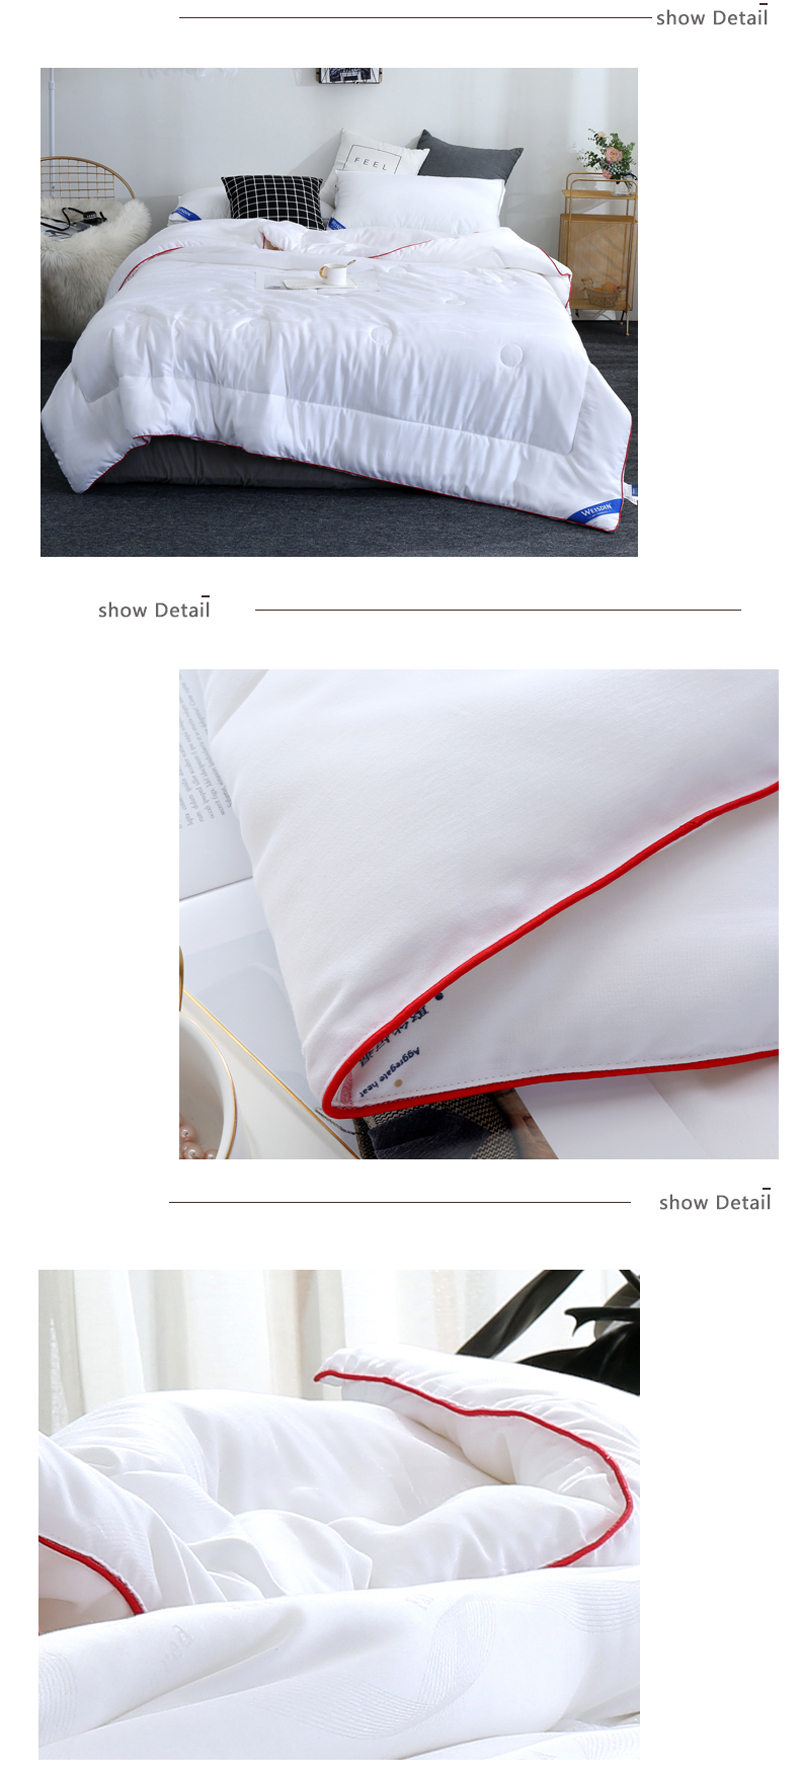 Bed Sheets And Duvets